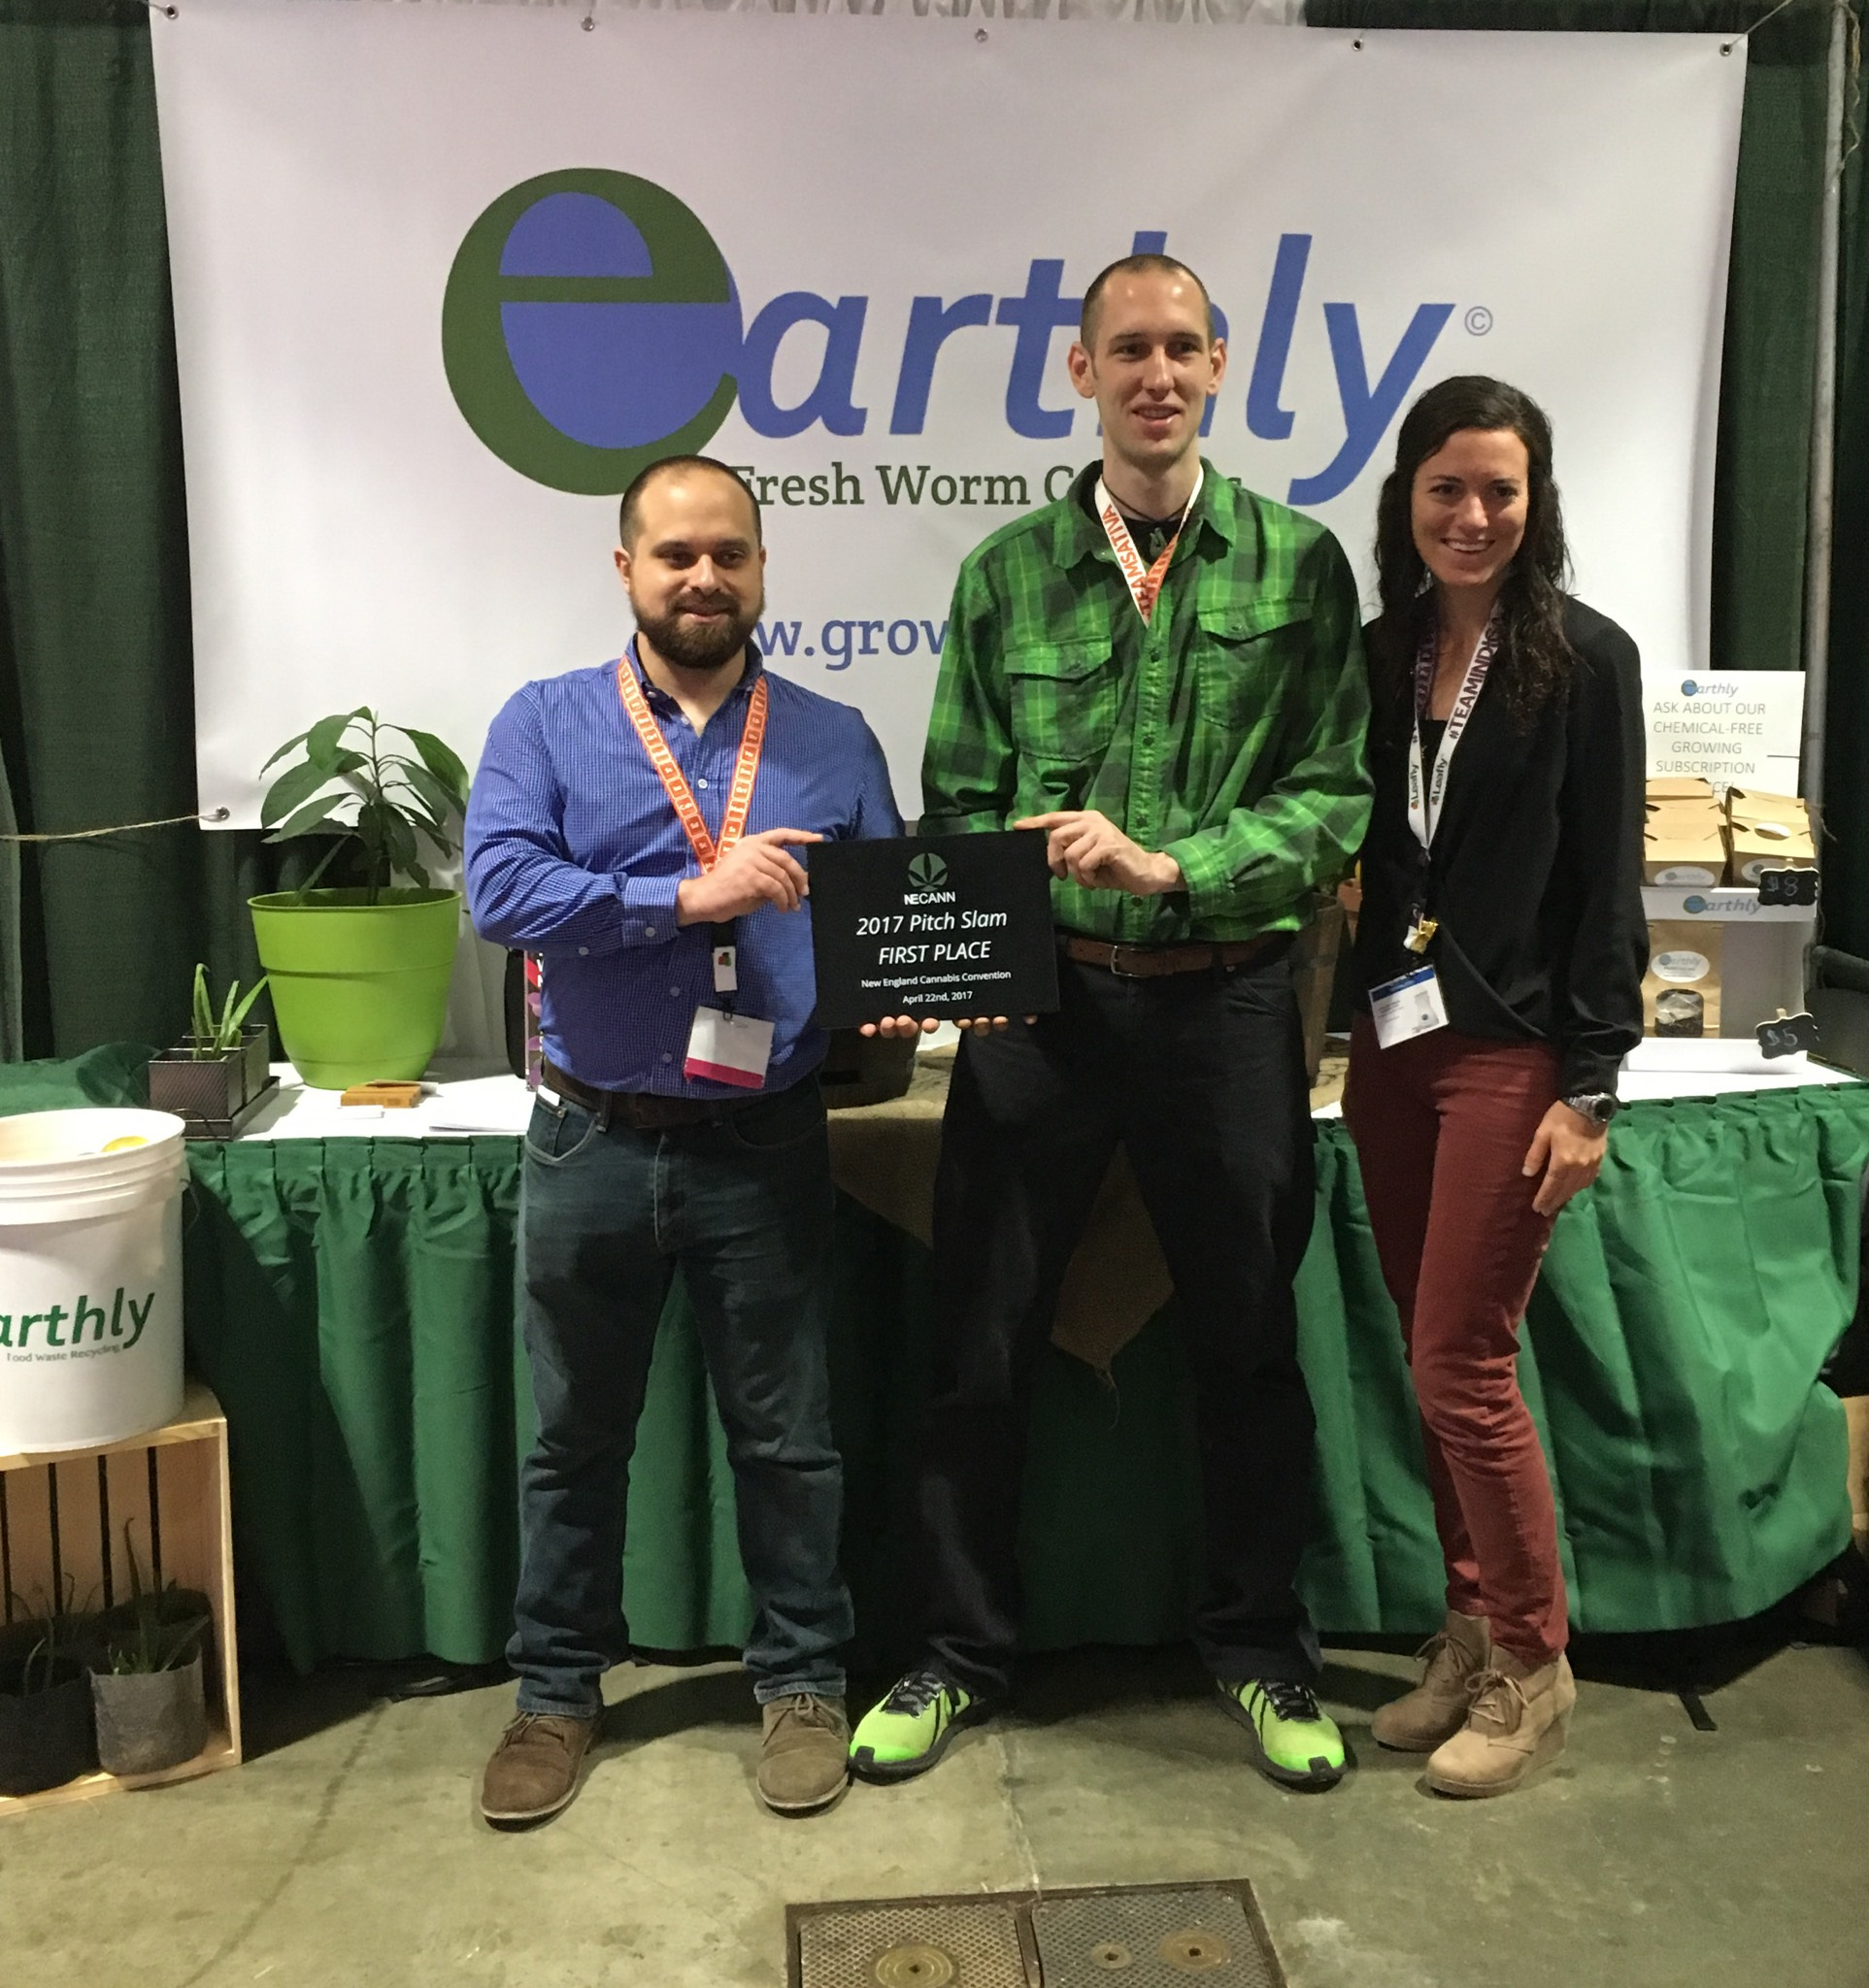 Earthly team members Frank Mastrobuono,Mike Kowalczyk, and Sandy Moskovitz pose with their First Place award plaque after the first annual NECANN Pitch Slam, held and Hynes Convention Center in Boston, MA on April 22, 2017